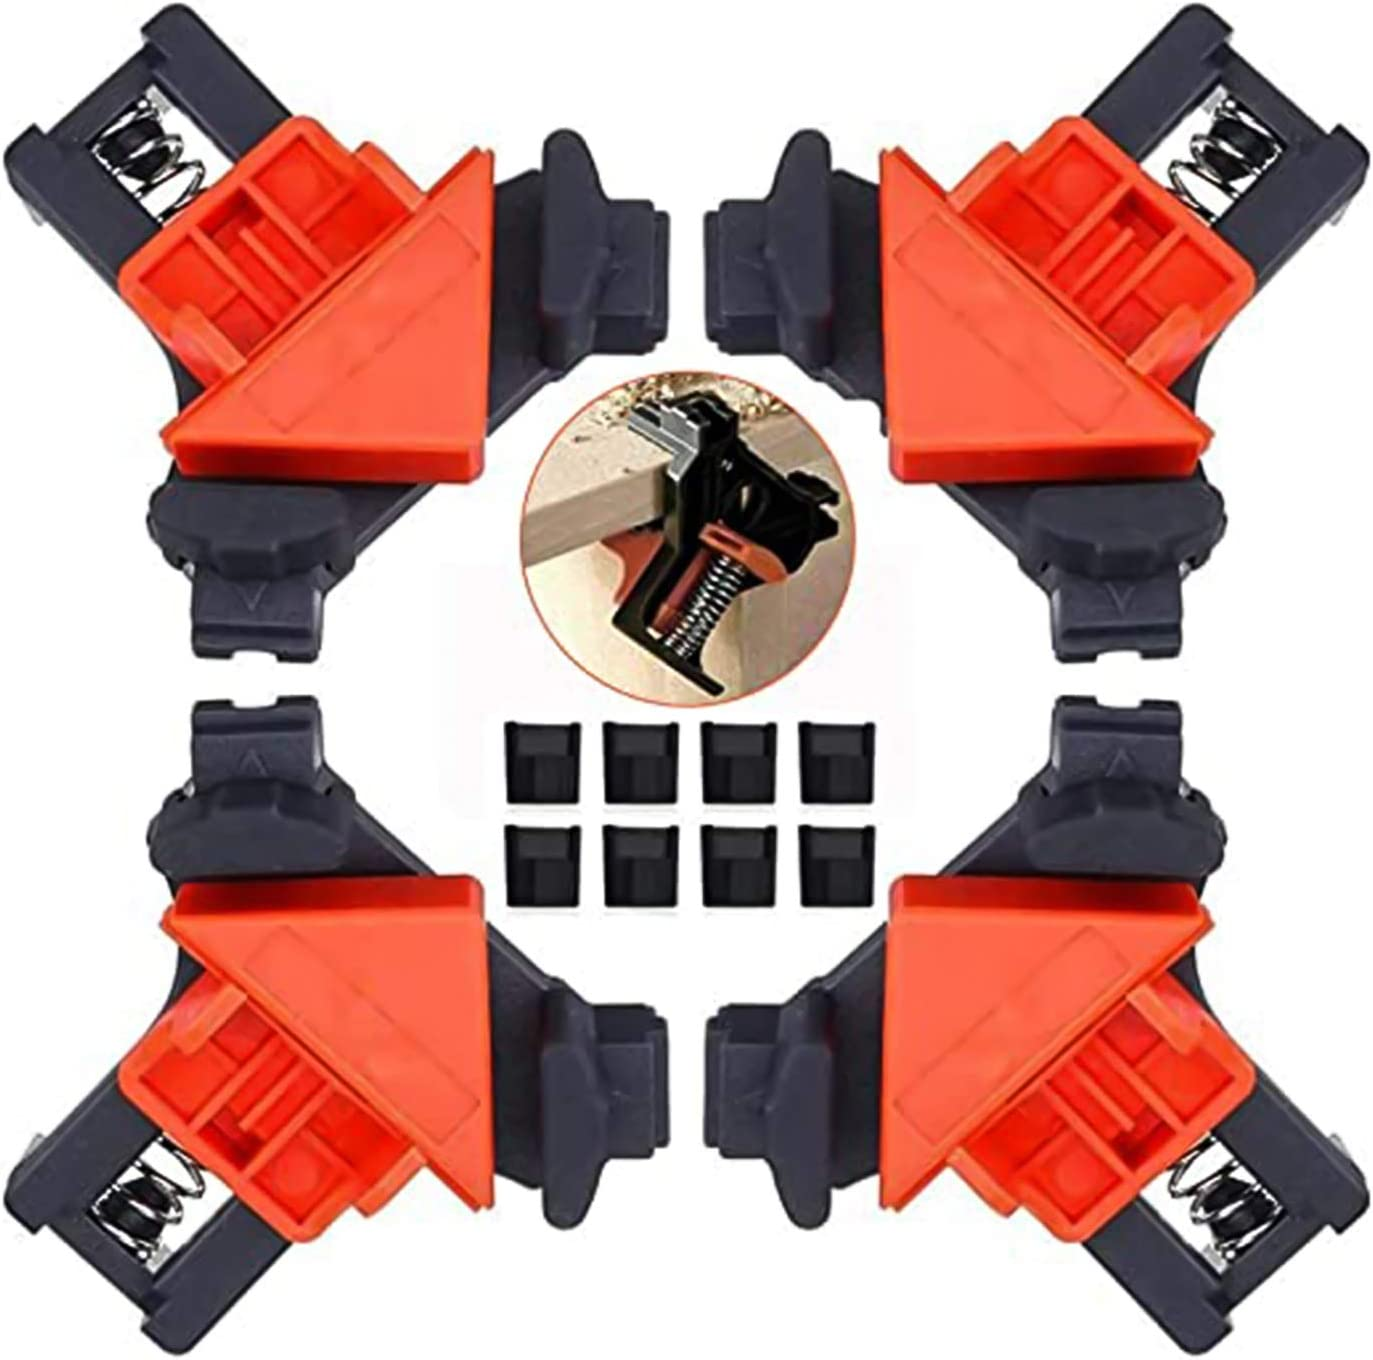 4PCS 90 Degree Angle Clamp Right Clamp Adjustable Swing Corner Clamps, Multi-function Woodworking Fixing Clips for Making Cabinets, Furniture Repair Connection, Welding, Drilling and Drawers